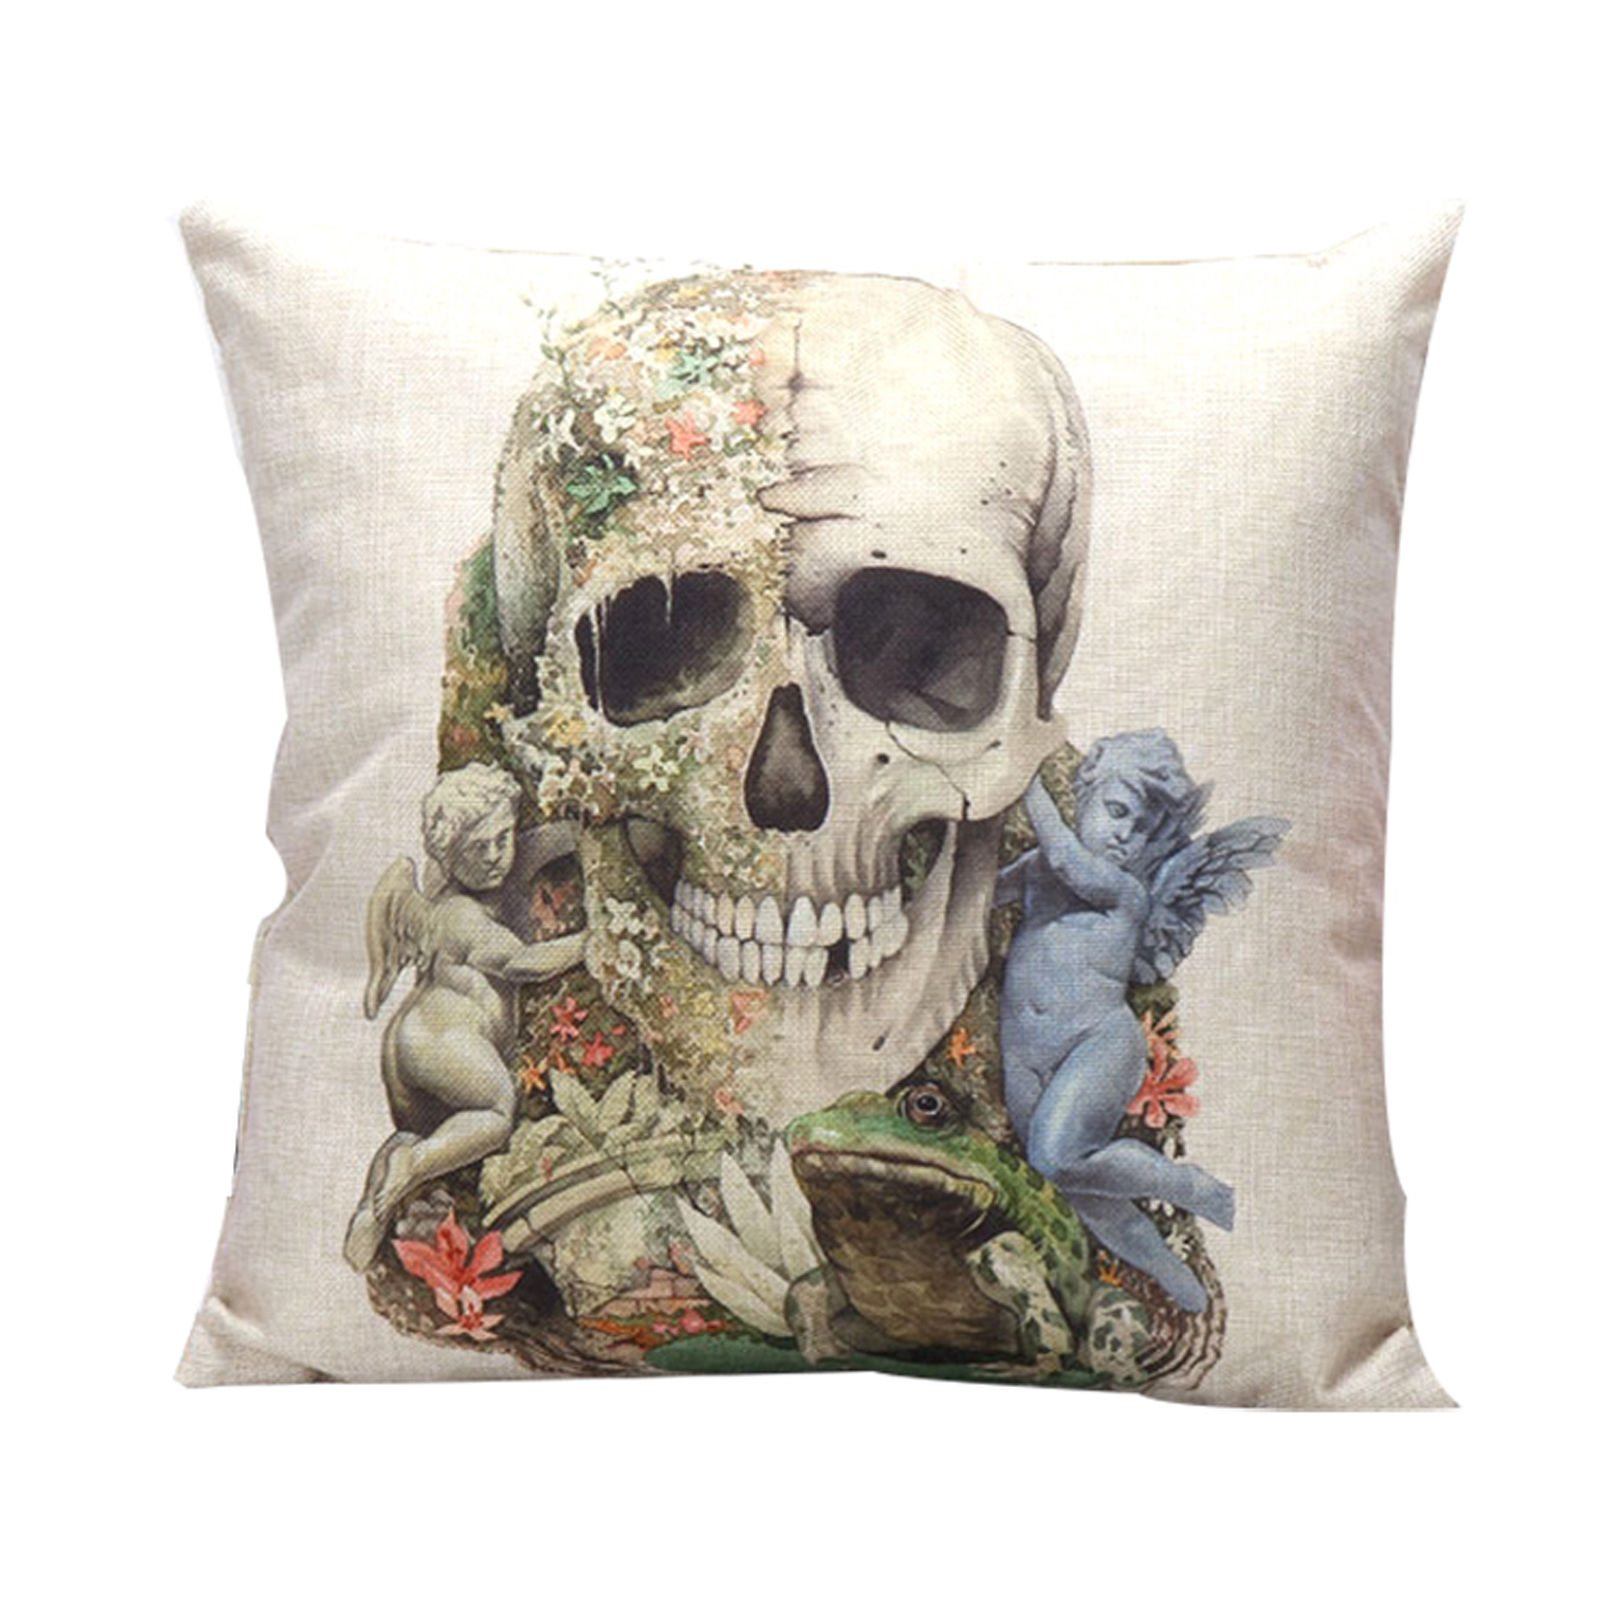 Skull Cushion Adelaide - available from BIMBO ONLINE store.